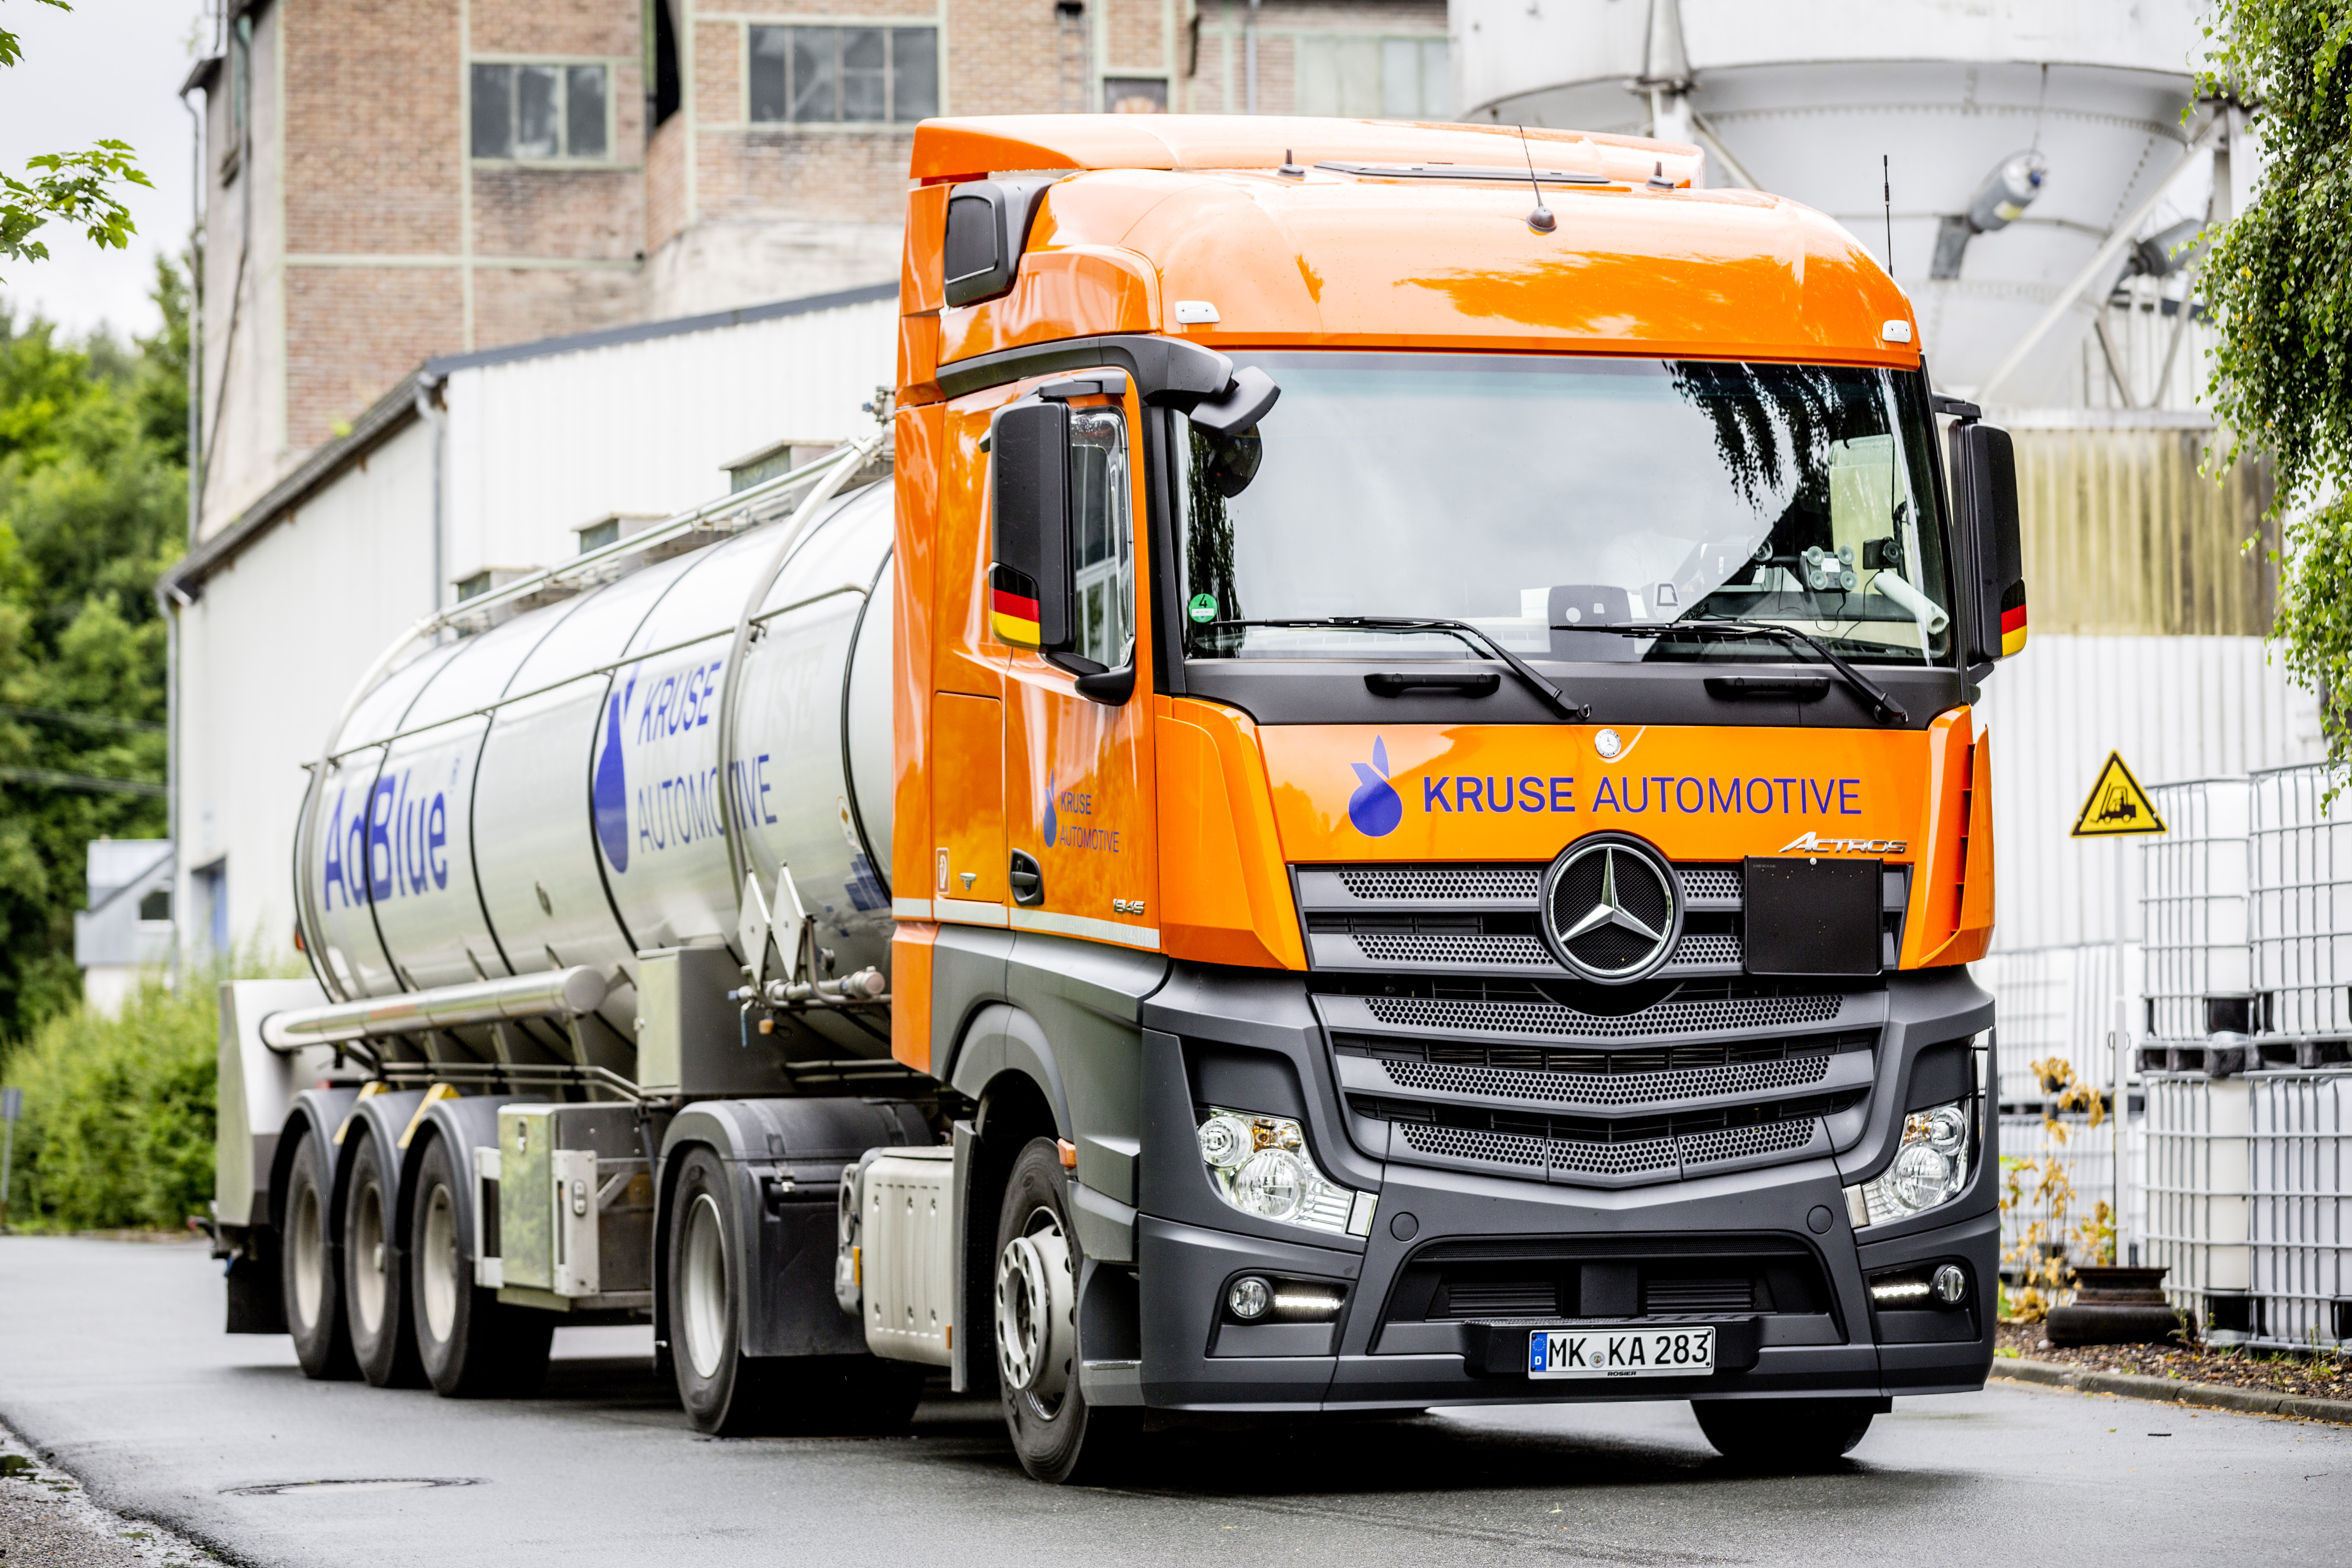 AdBlue Raod Tanker for bulk delivery